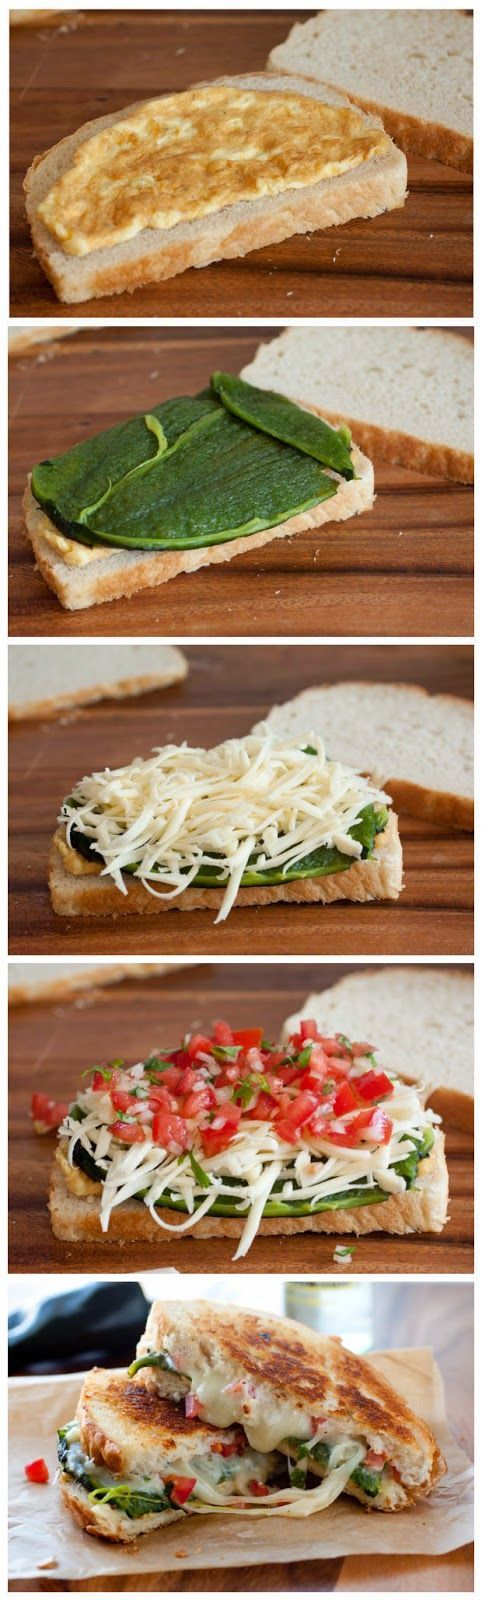 Chile Relleno Grilled Cheese Sandwich Mais